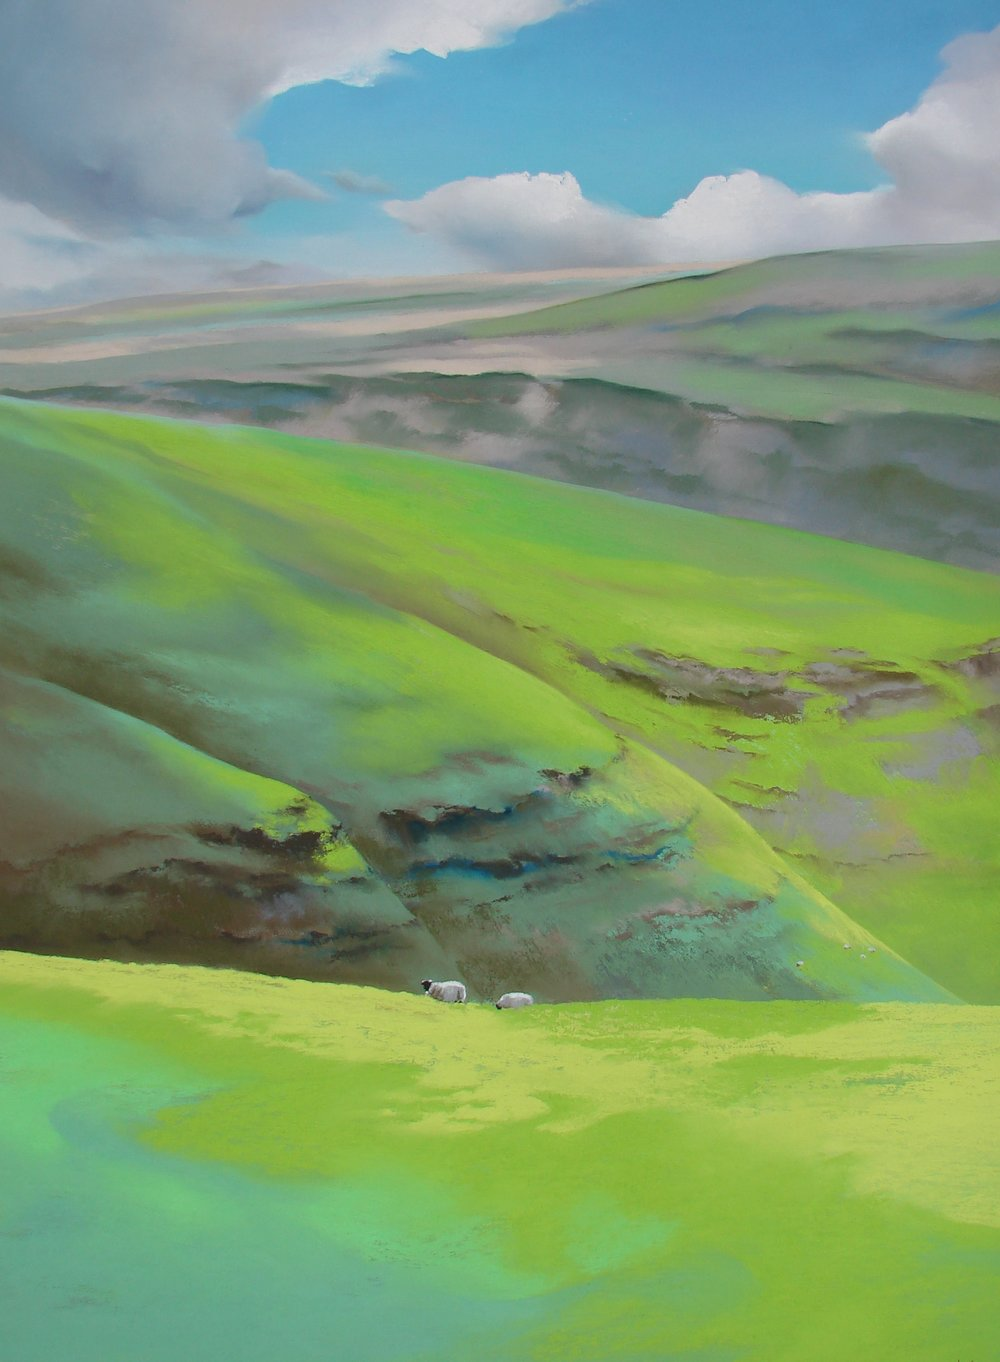 - It is therefore not surprising that these spaces are the focus of many of my compositions!'ABOVE KETTLEWELL WITH SHEEP'Here I enjoy the bright green pastures of some of the upper limestone scenery above Kettlewell (the purples were an oversimplification on my map). From these upper moors you can look straight over the valleys, across the hidden valley bottoms to the moors opposite; across Wharfedale towards the distant contours of Littondale.